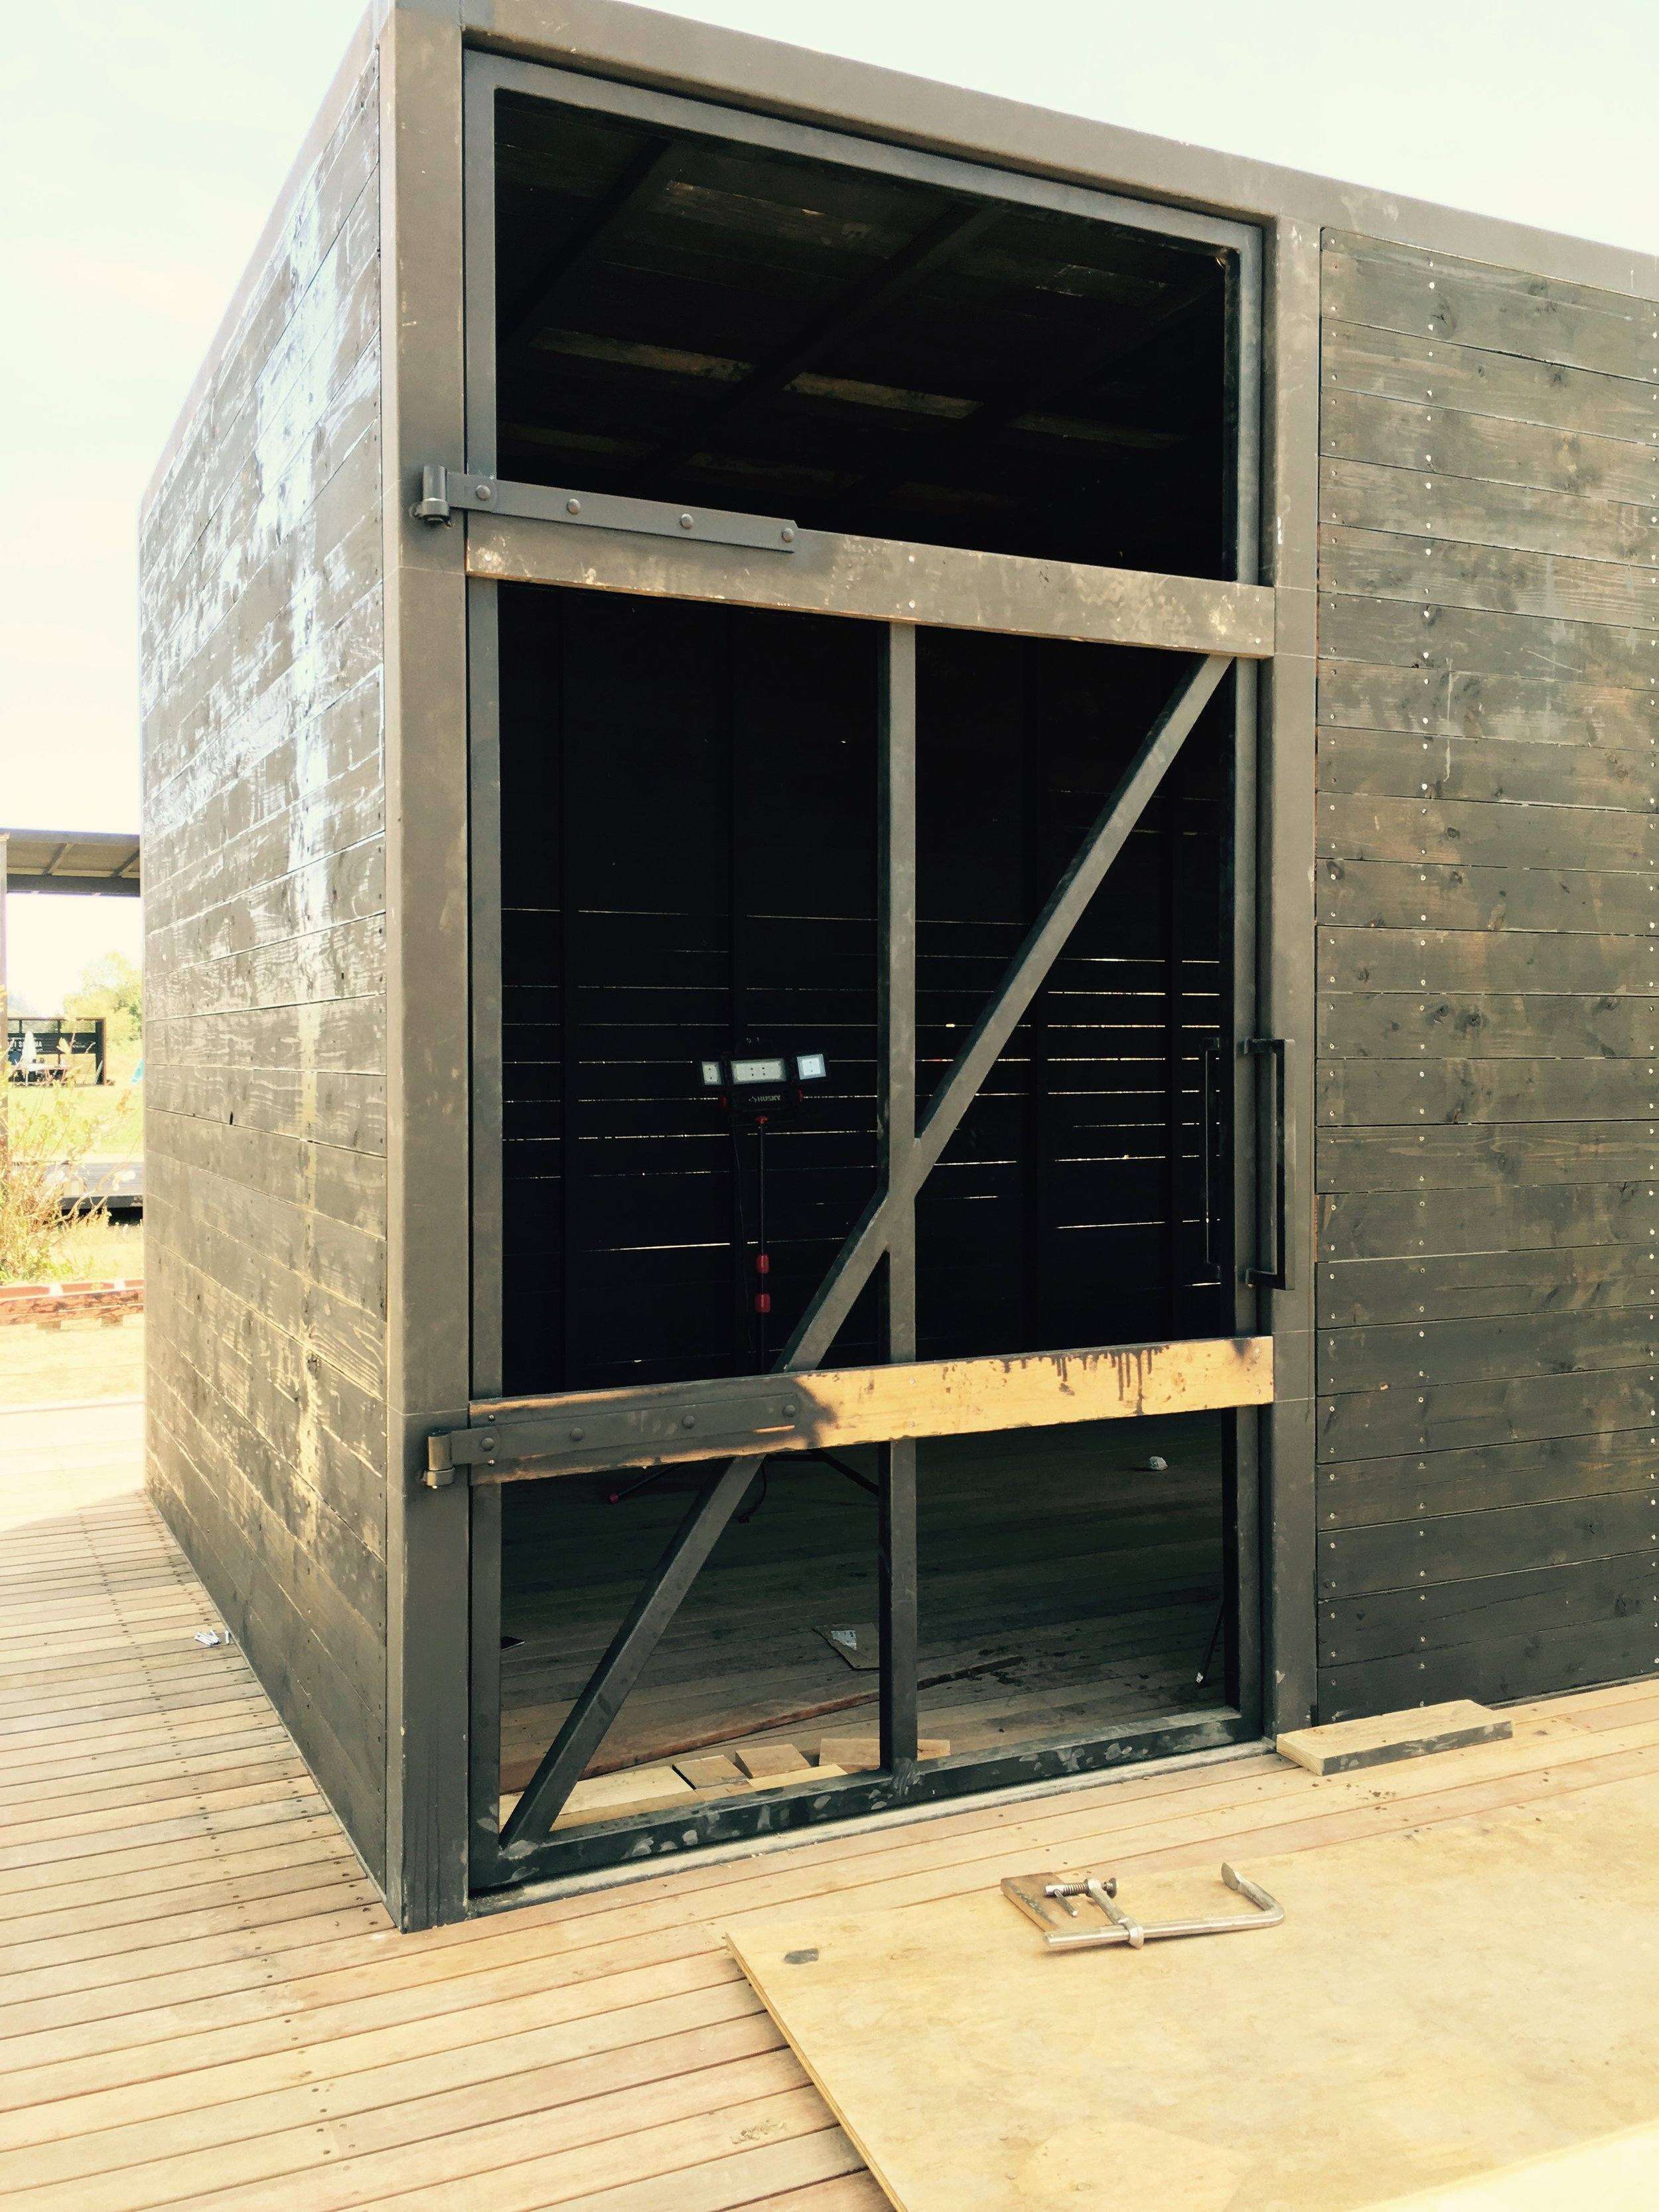 We are fabricating our own metal and wood doors for all the buildings. This one is a prototype for all the Ag Buildings. It will be on the chicken barns and other buildings. 5' wide x 10' tall. 150 lbs. Finished in Douglas Fir and Black Pine Tar. The door in the photo isn't complete.